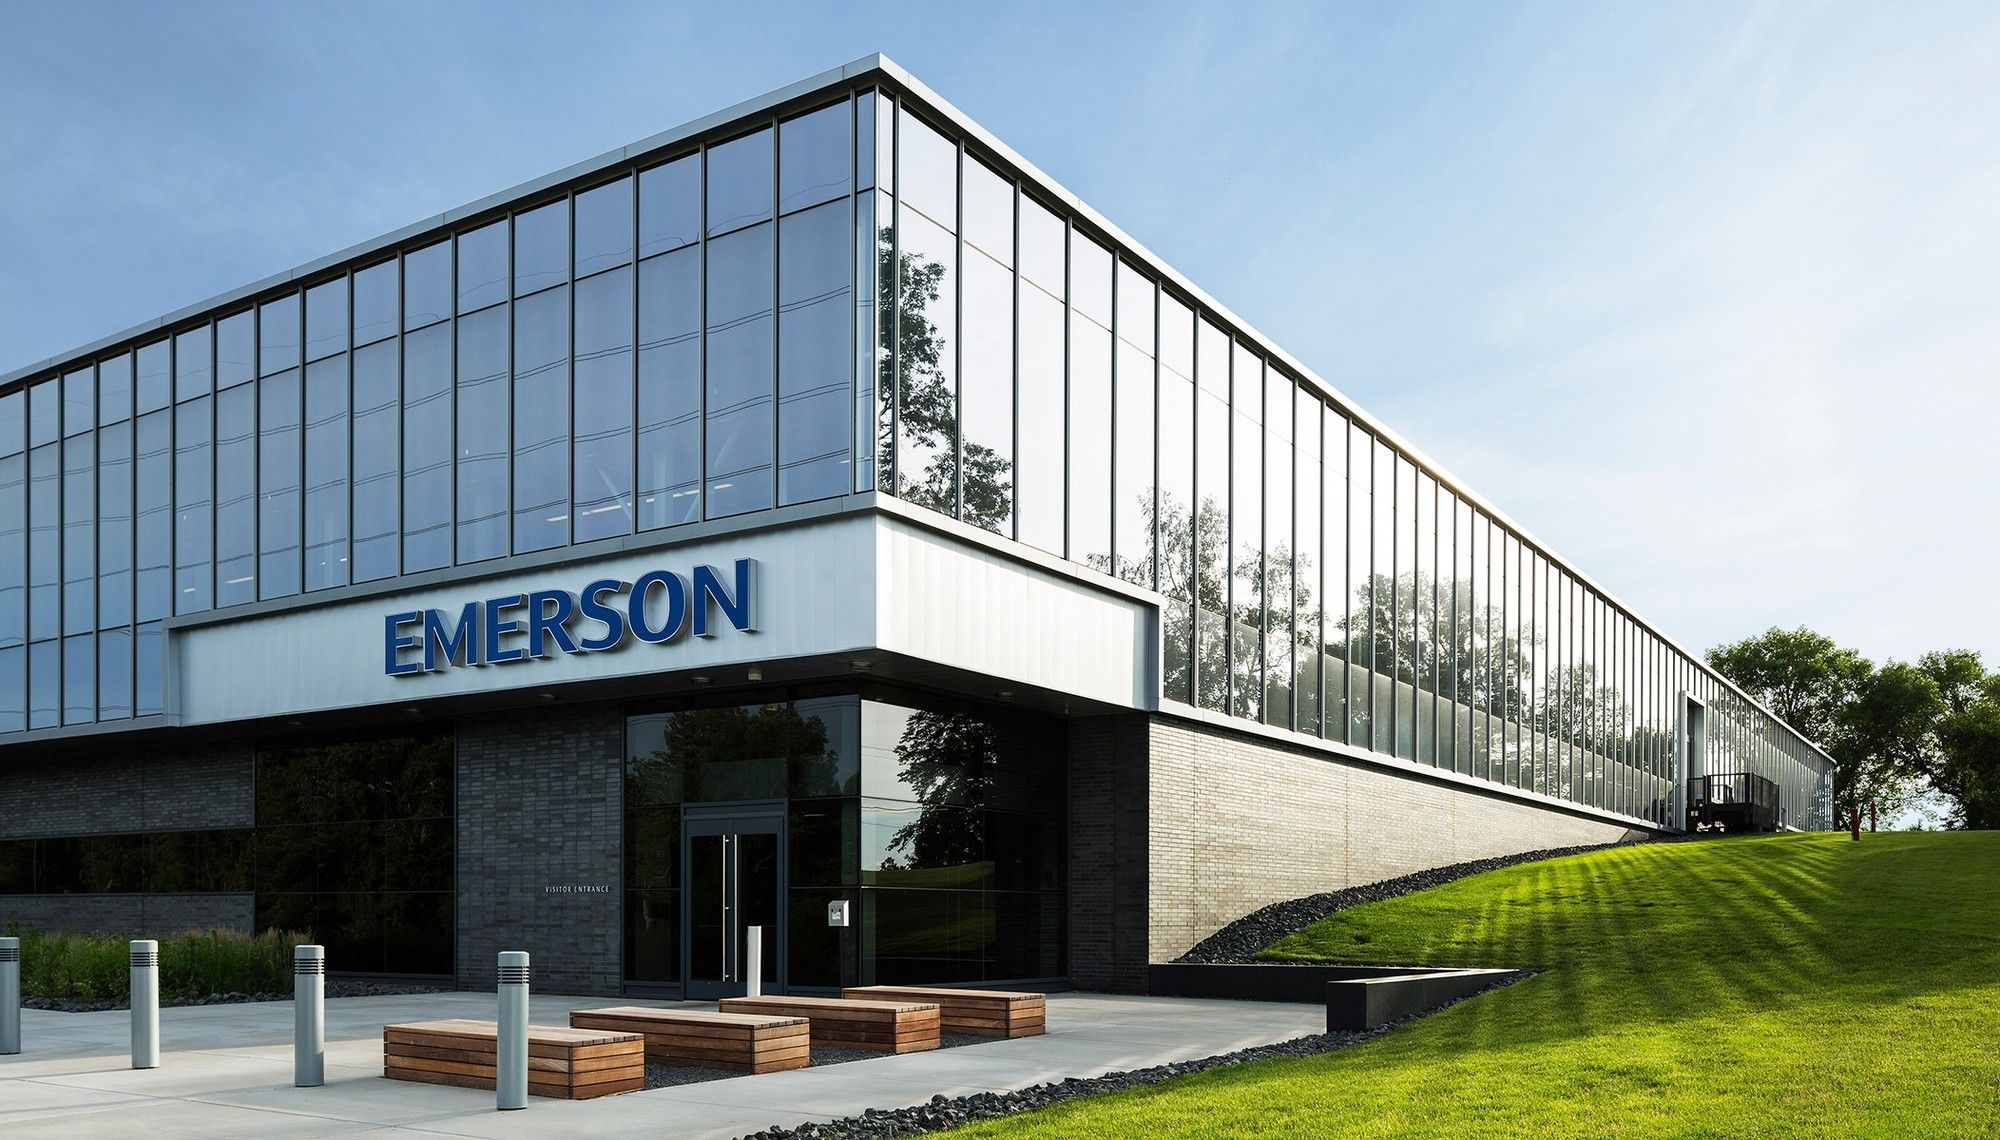 Partnership with Emerson